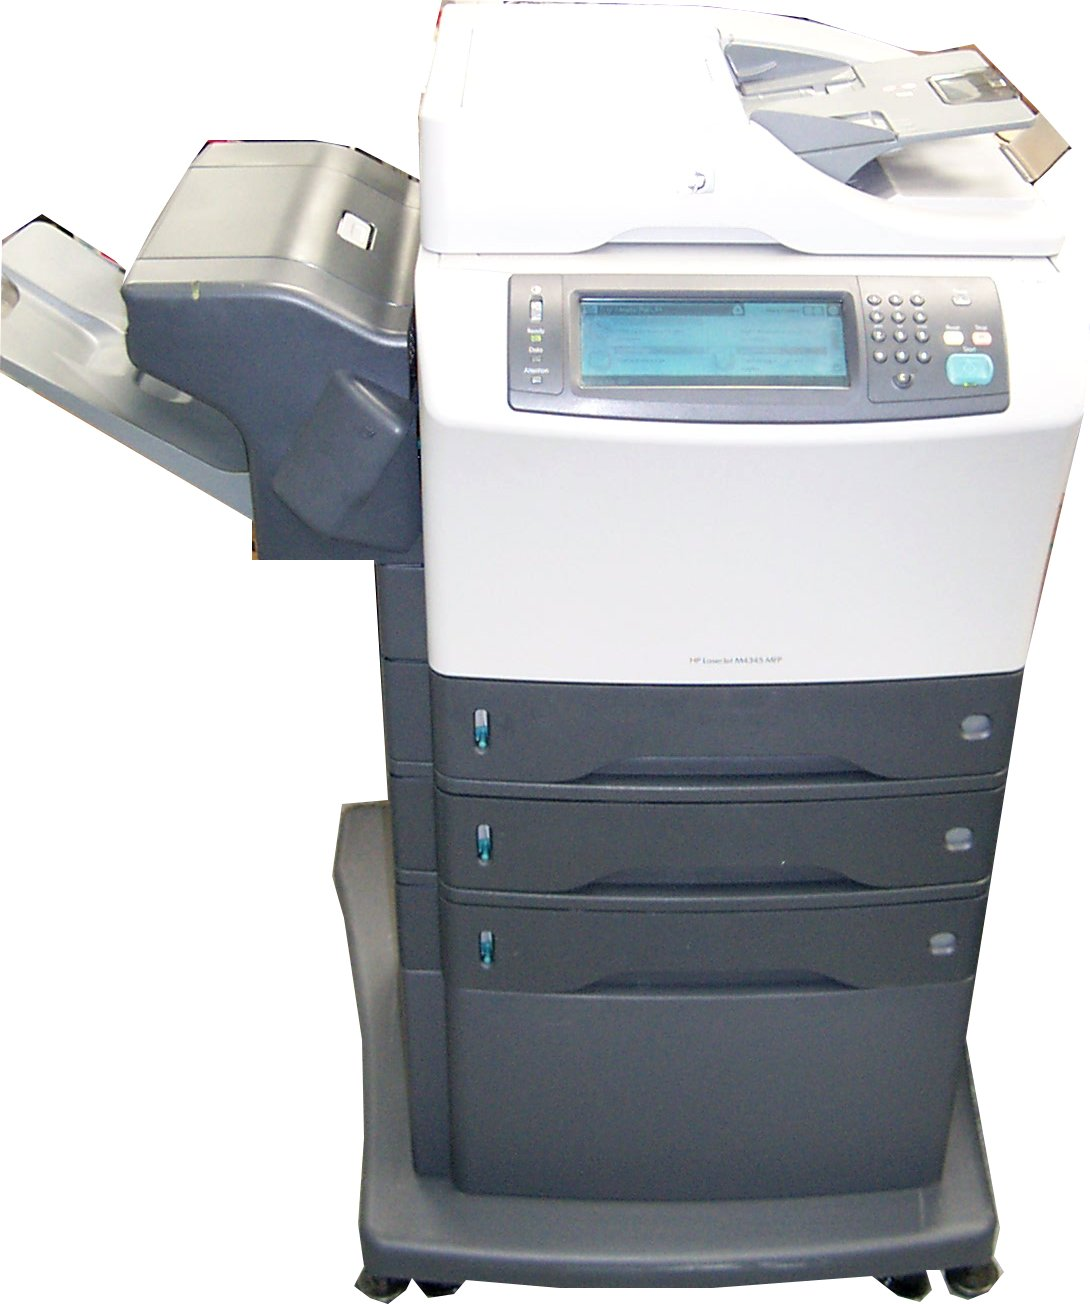 hp cb427a laserjet m4345 mfp multifunction printer with stand p count 159071 One Tray HP LaserJet M4345 HP M4345 MFP Firmware